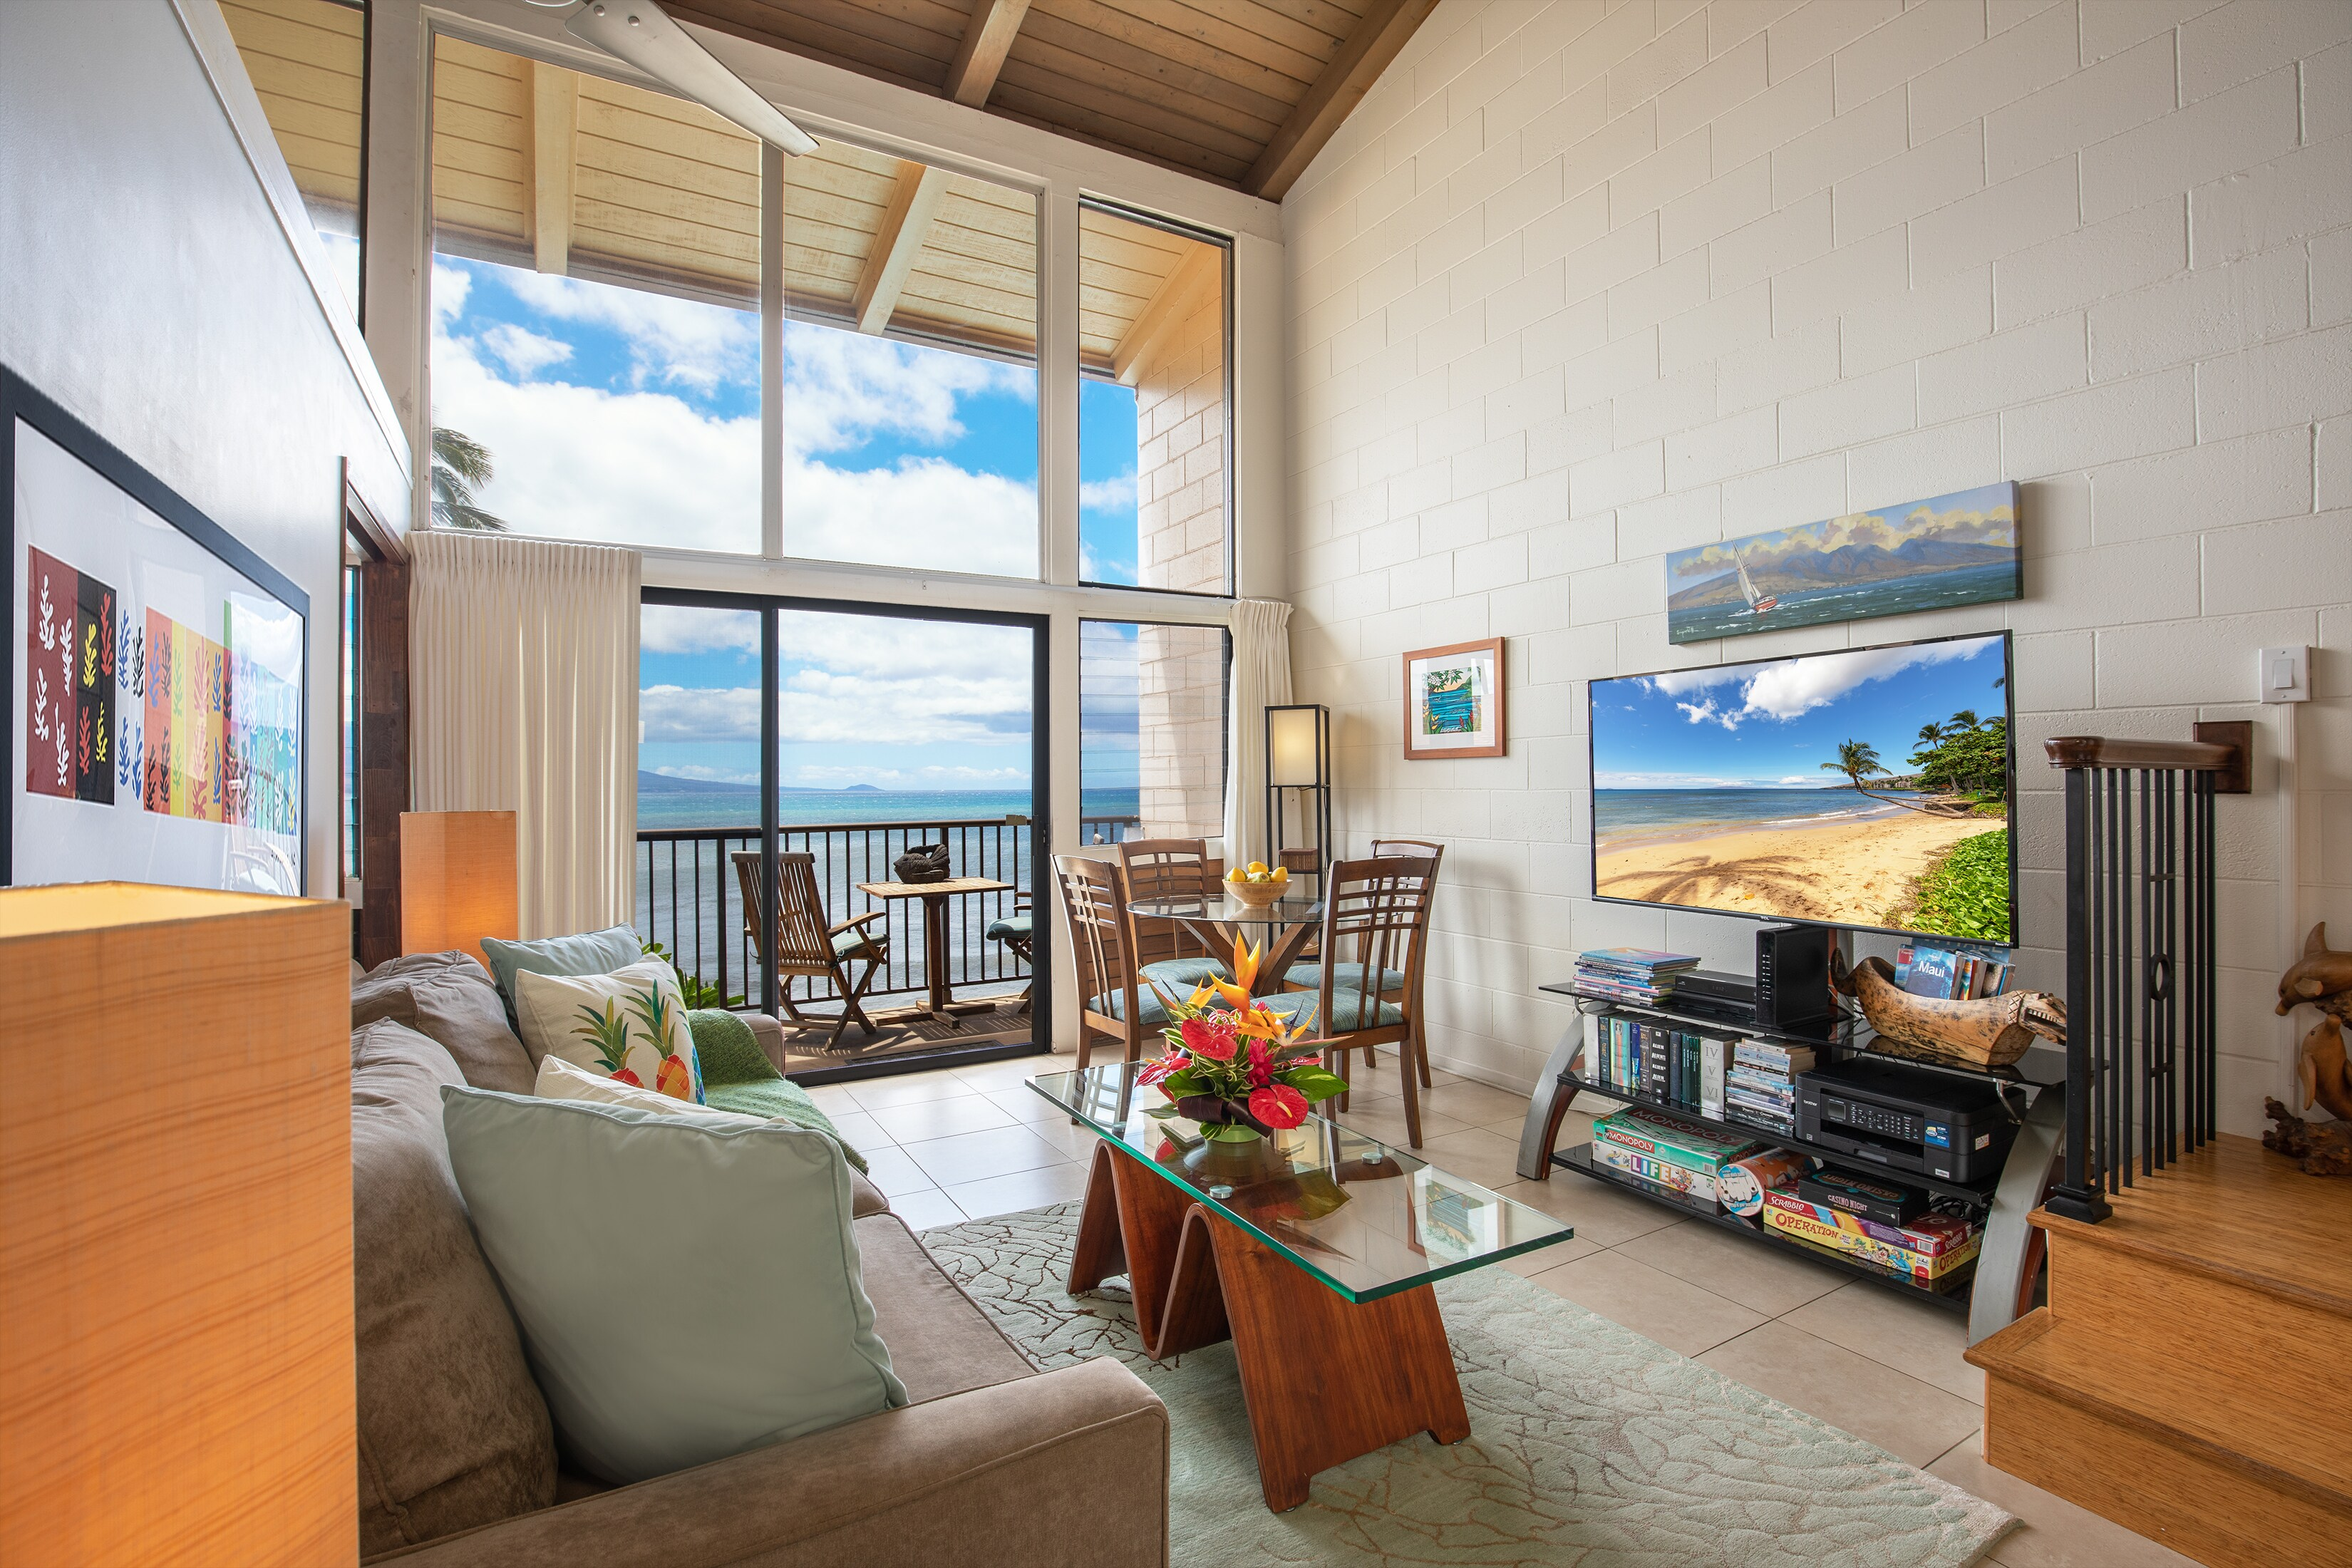 Property Image 2 - Extravagant Maui Abode with Easy Beach Front Access